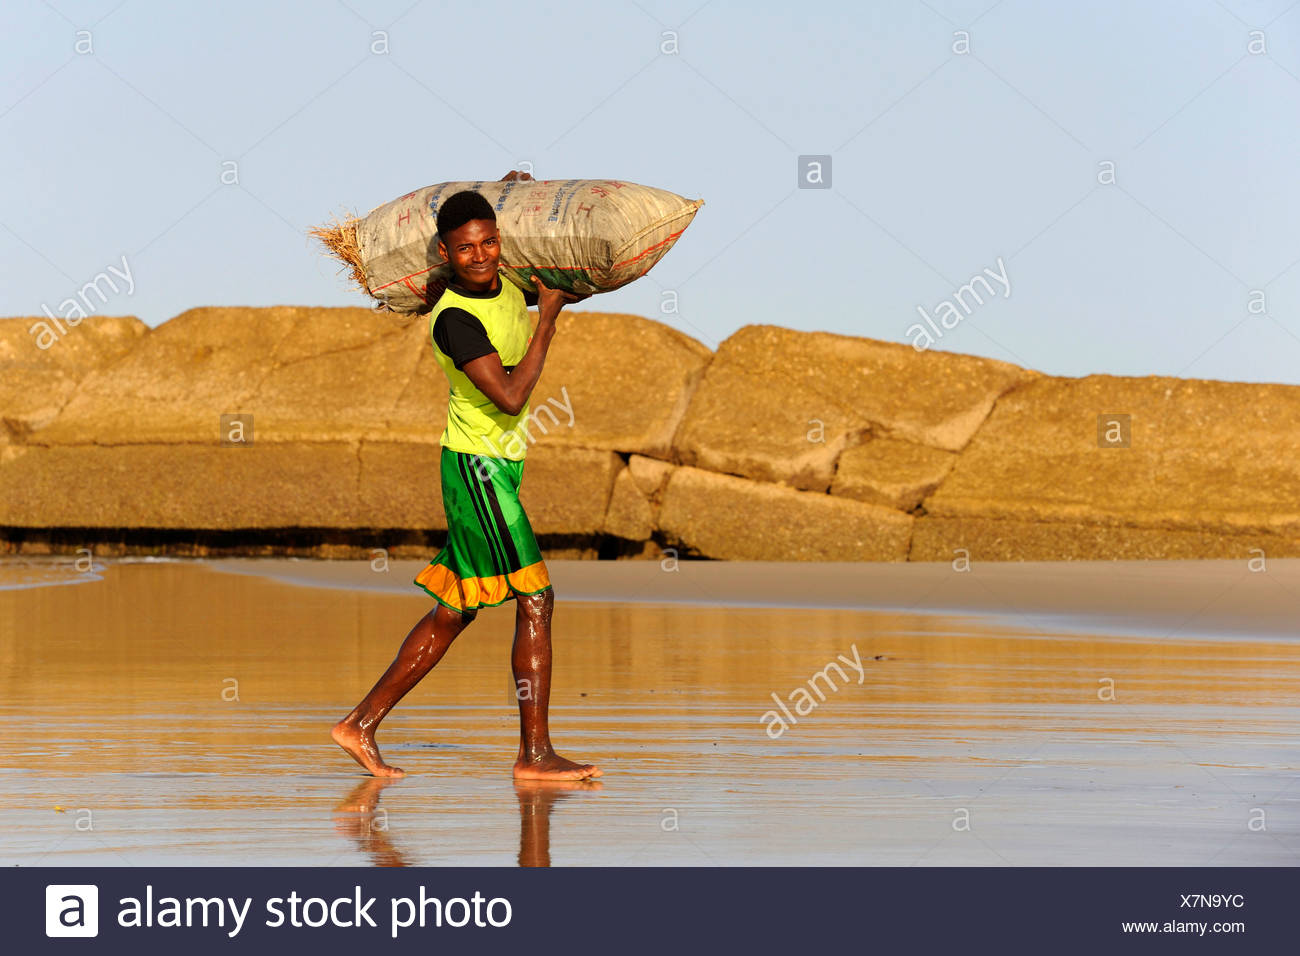 Young Malagasy man carrying a bag of charcoal, Morondava, Madagascar, Africa - Stock Image